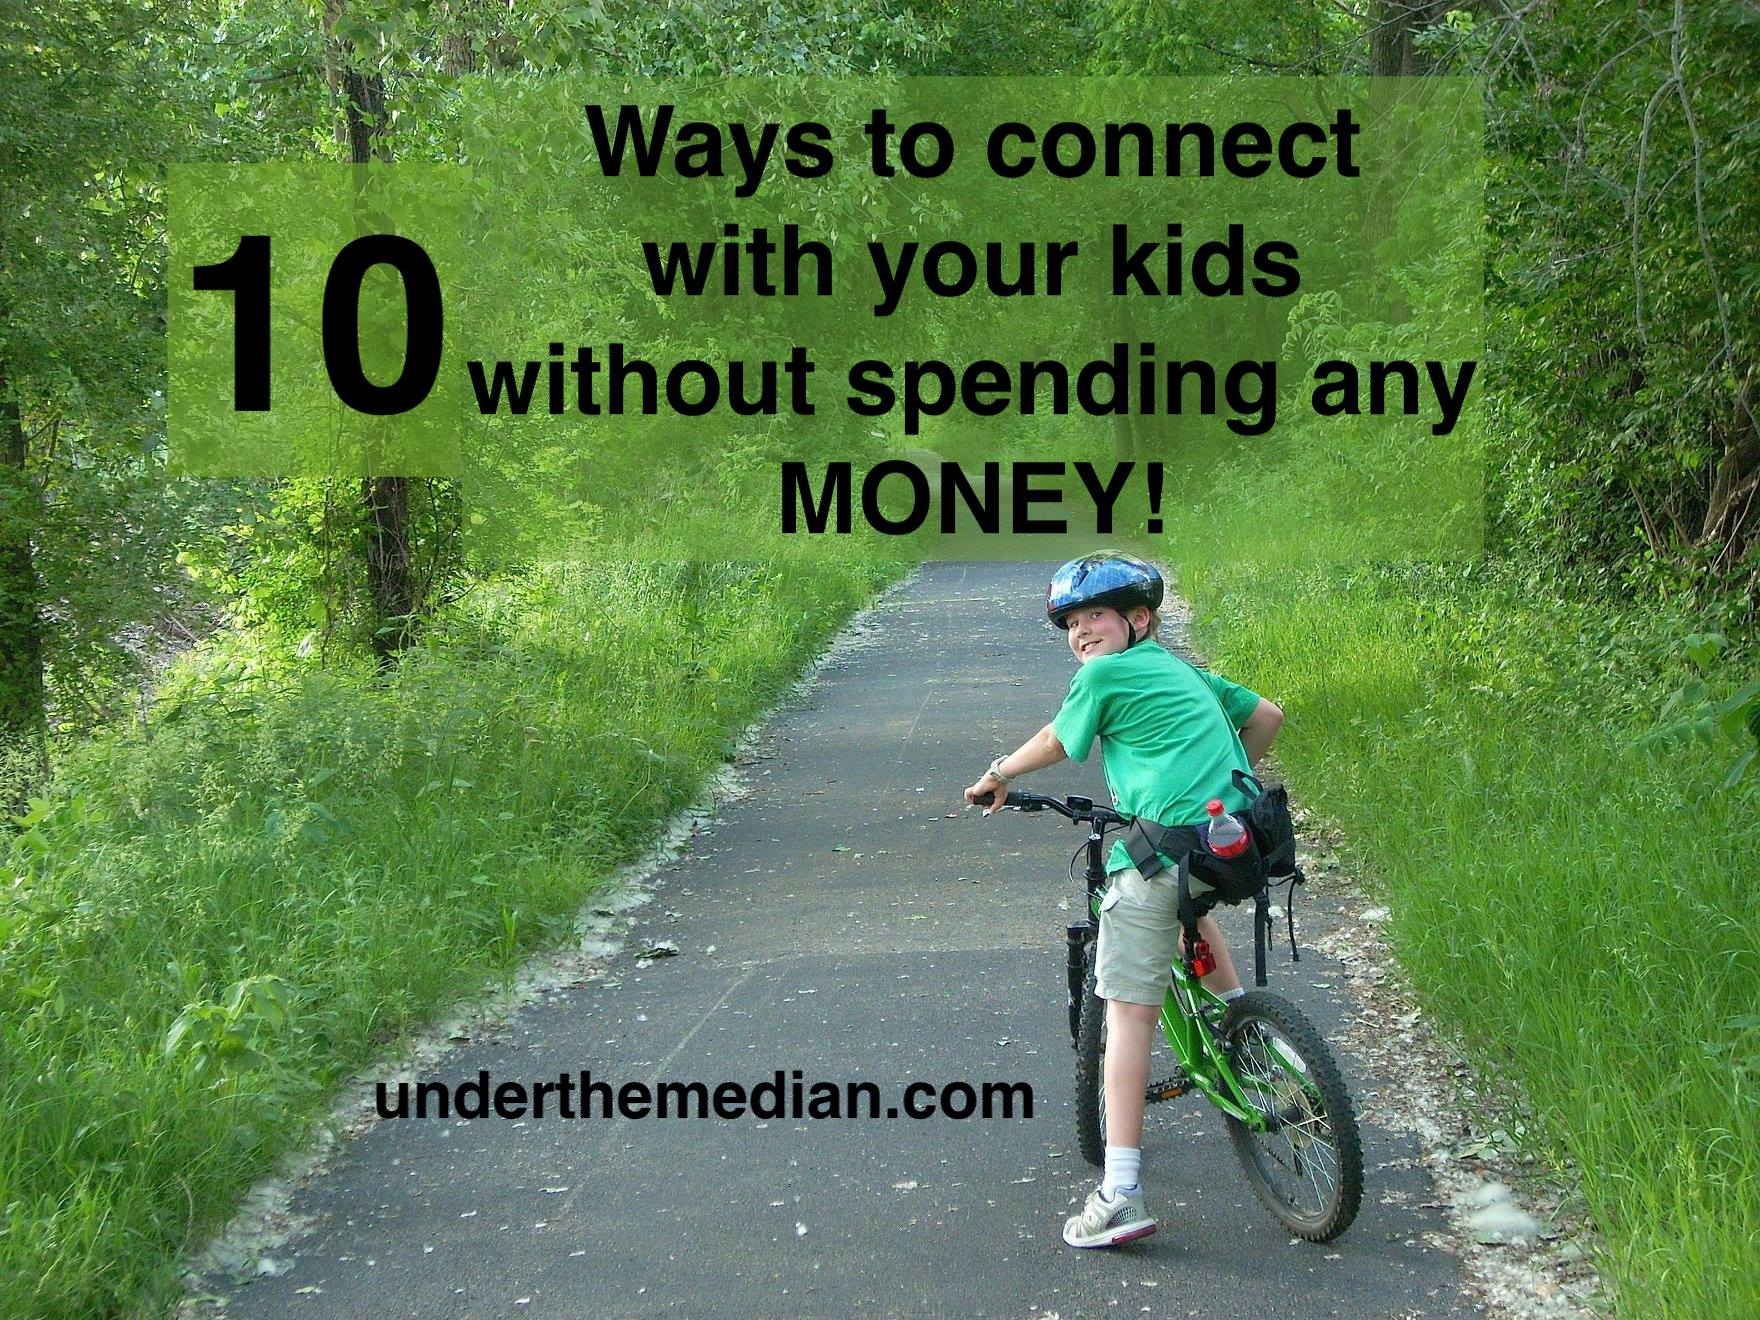 TEN Ways to Connect with Your Kids Without Spending Any Money